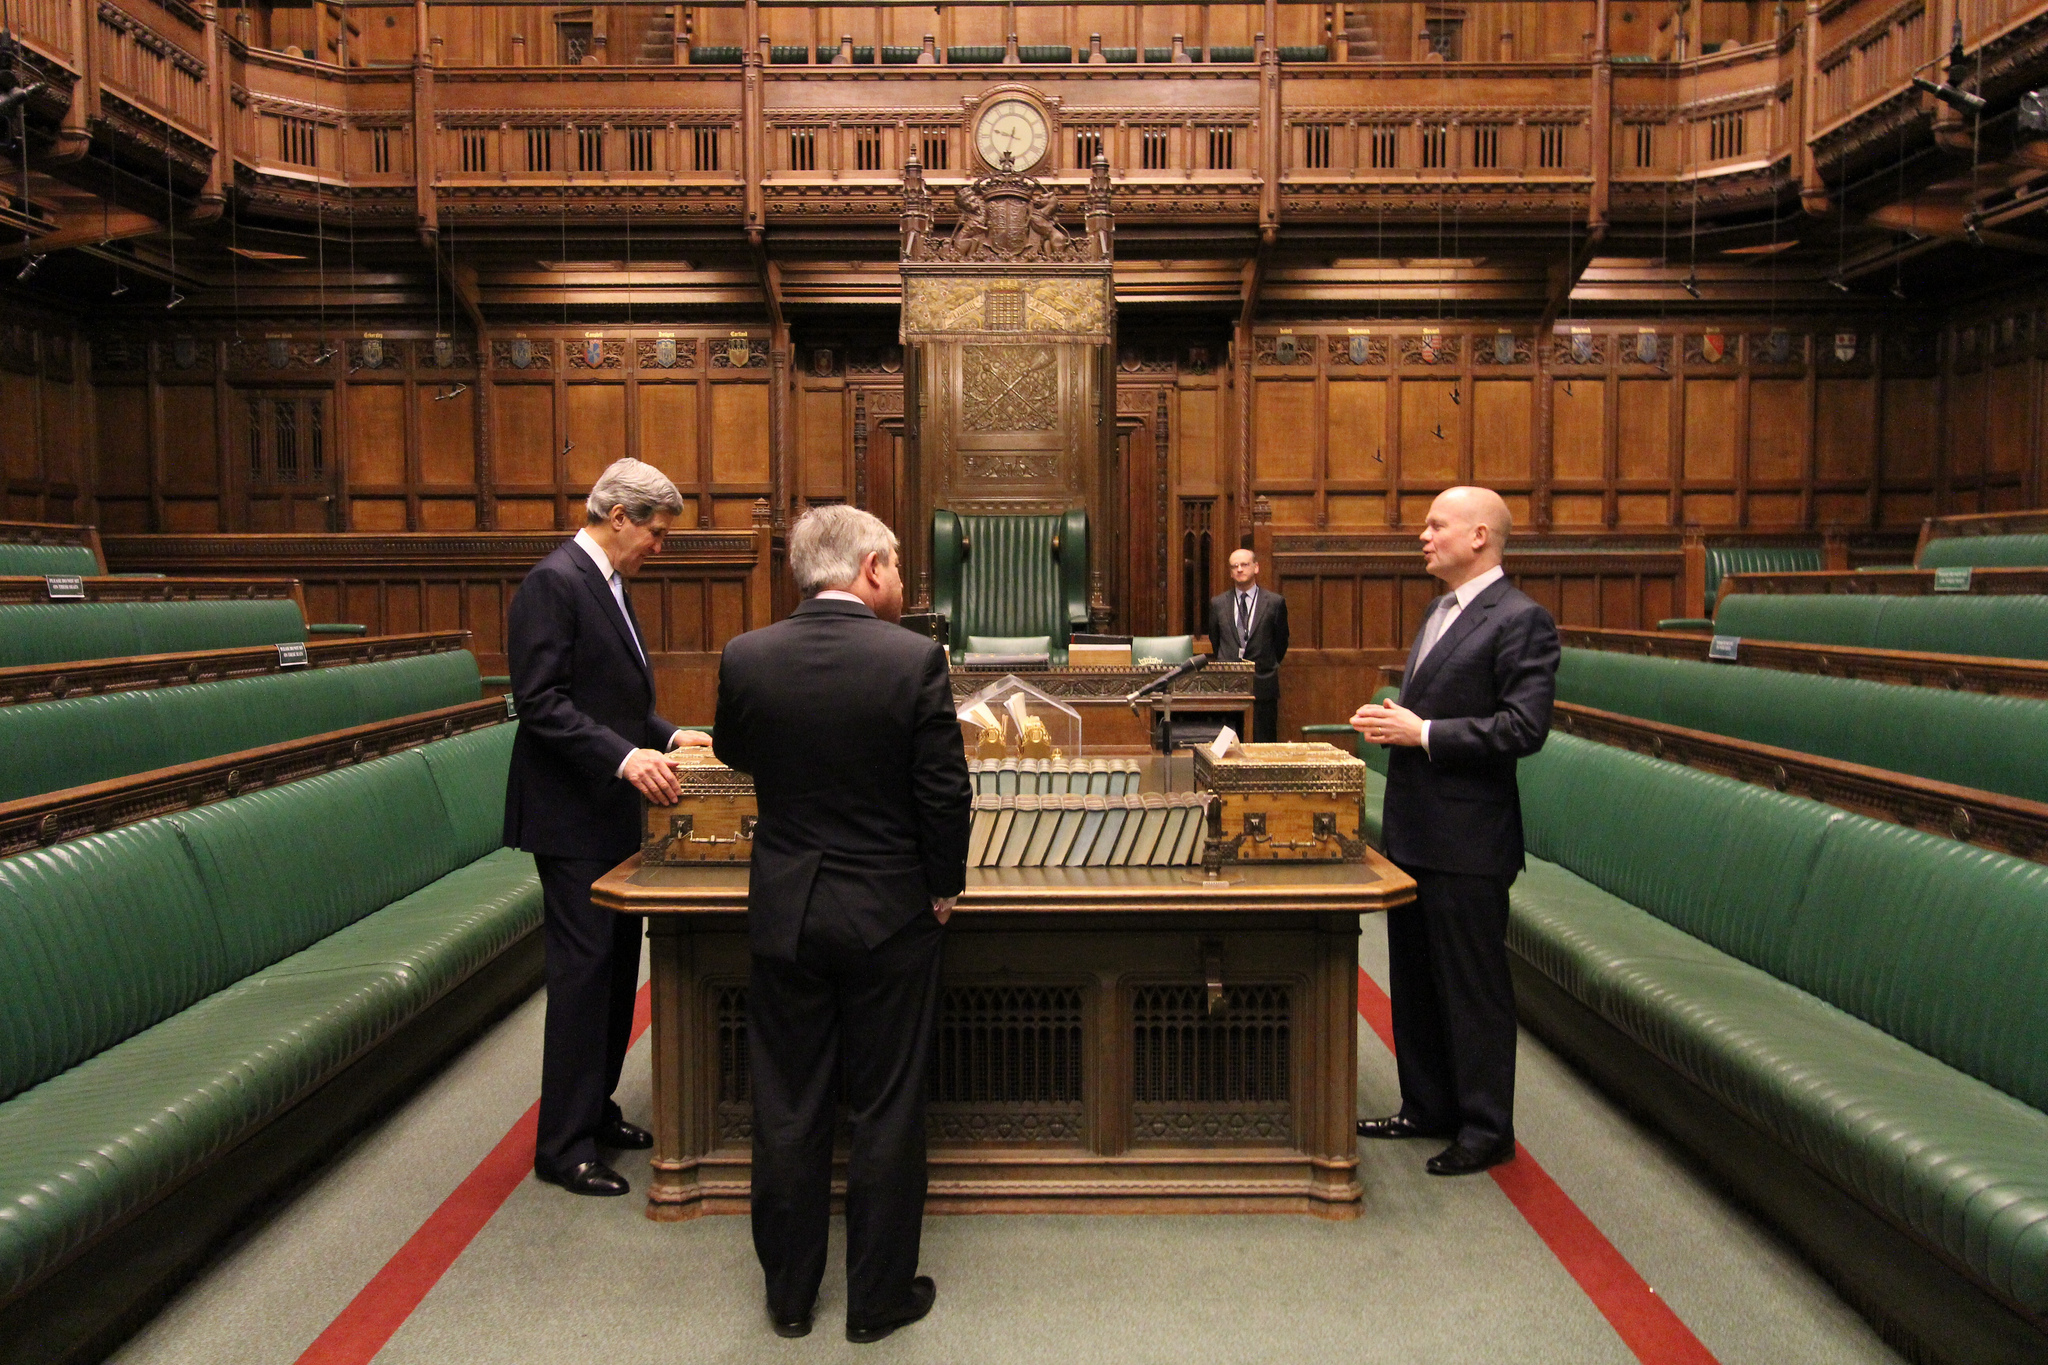 an introduction to legislature in the british house of commons And this is why the democratic legitimacy of parliament, particularly the house of commons parliament and democratic legitimacy in the uk, it operates through the democratic society.